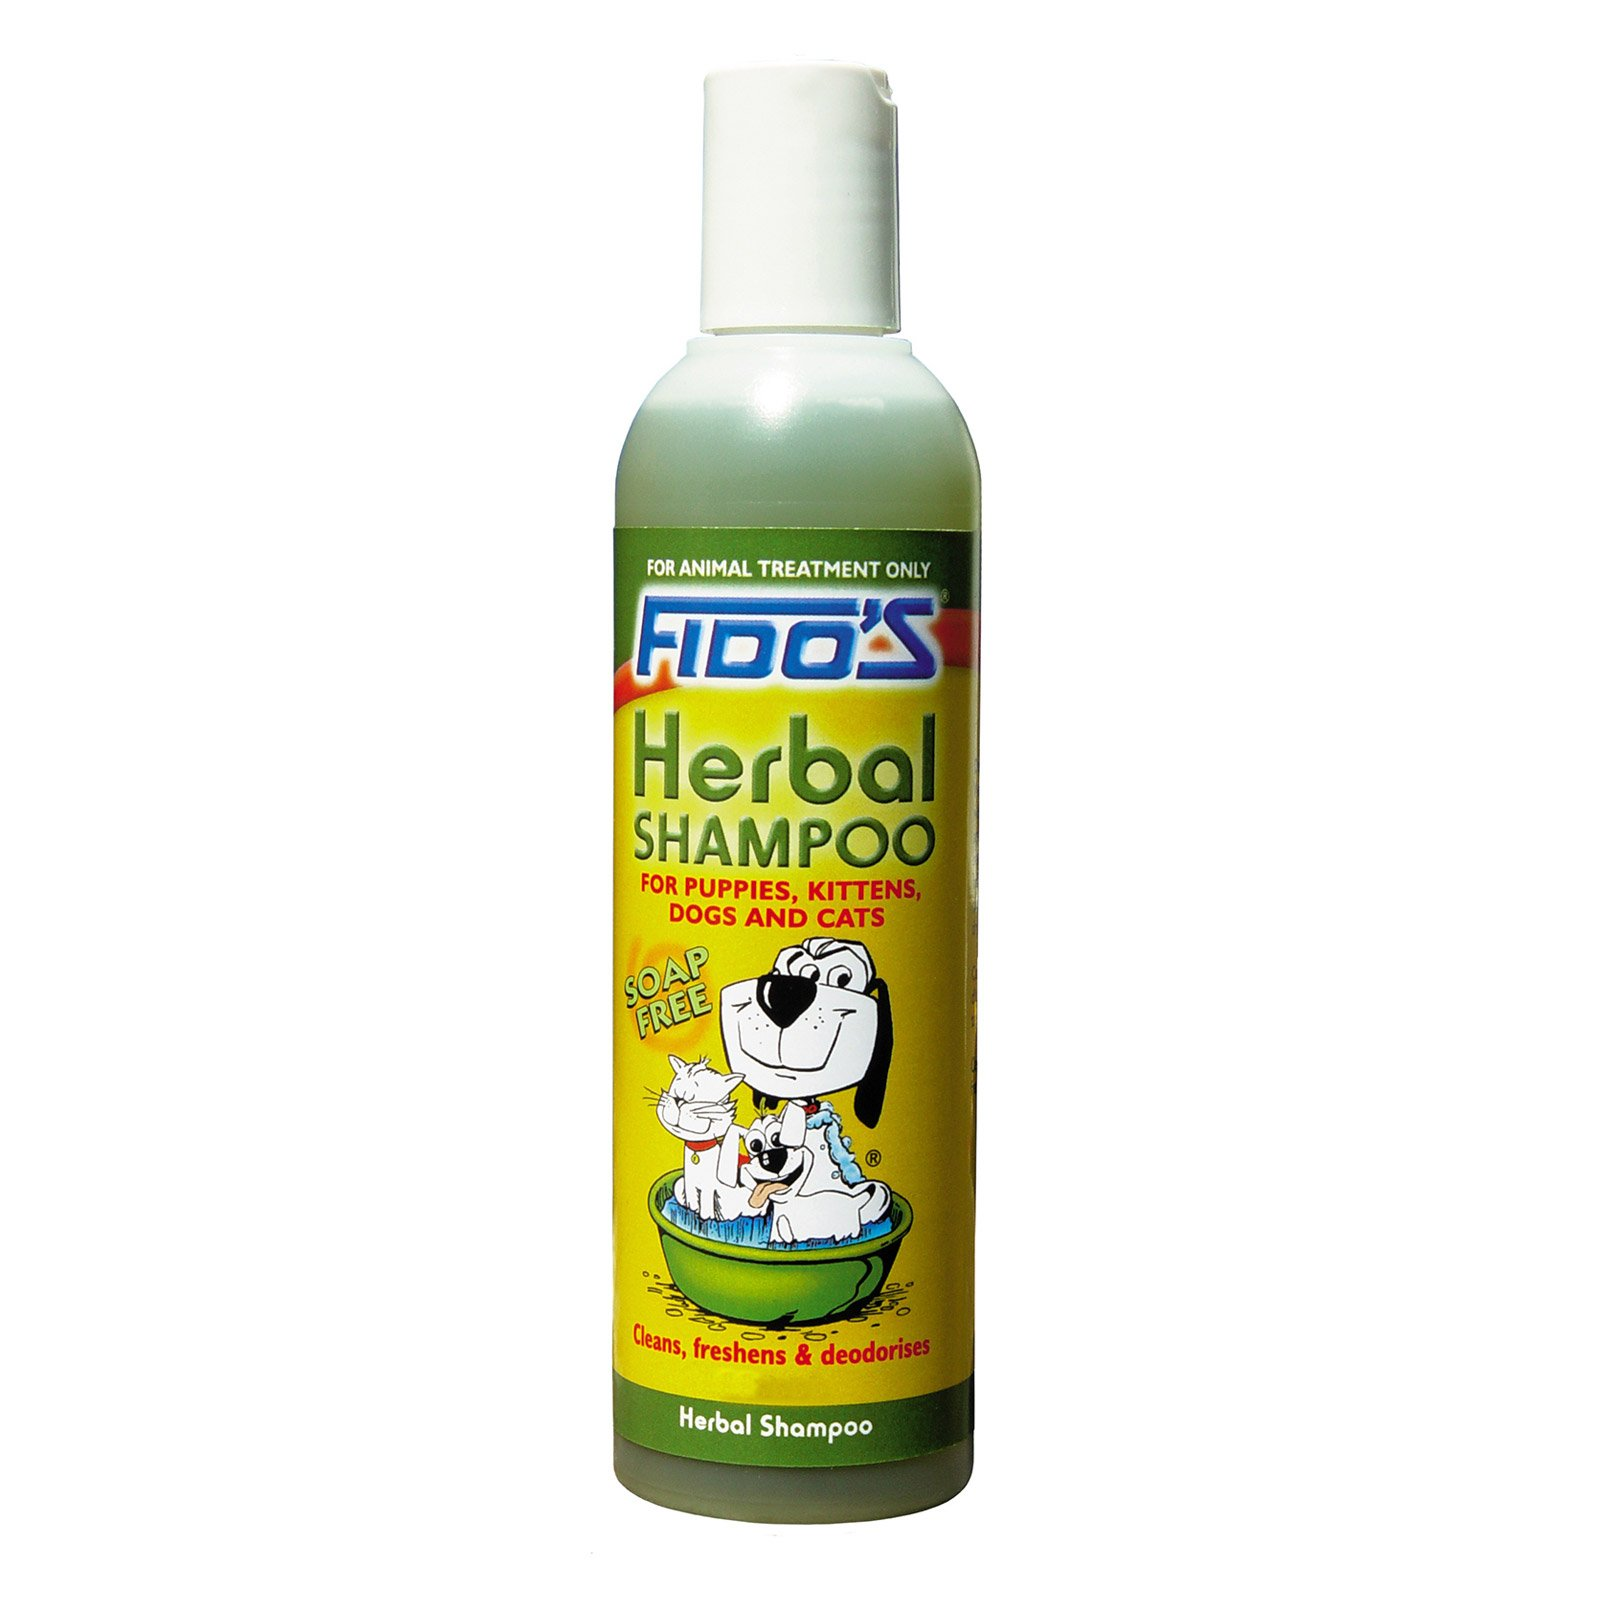 Fido's Herbal Shampoo For Dogs